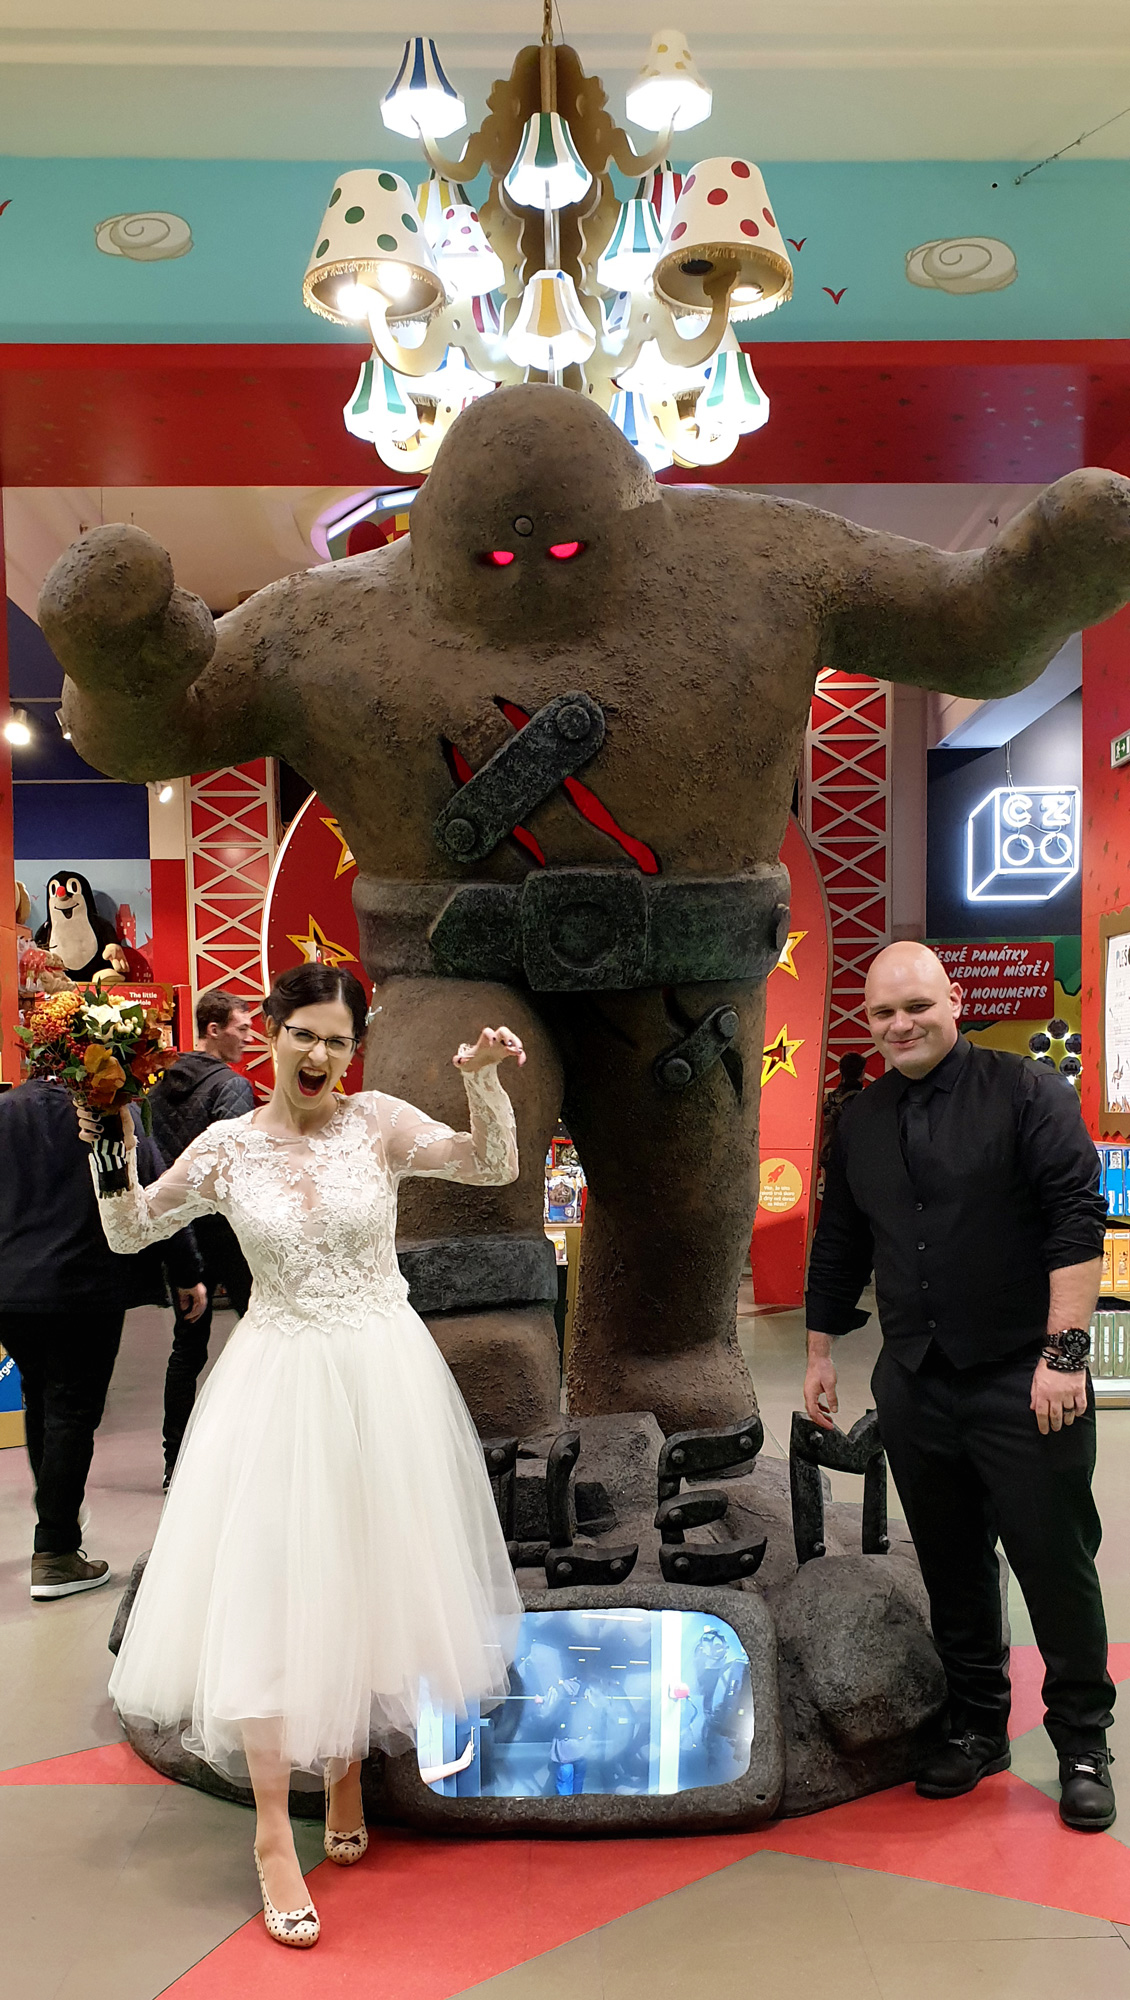 The Golem of Prague at a toy store with bride and groom